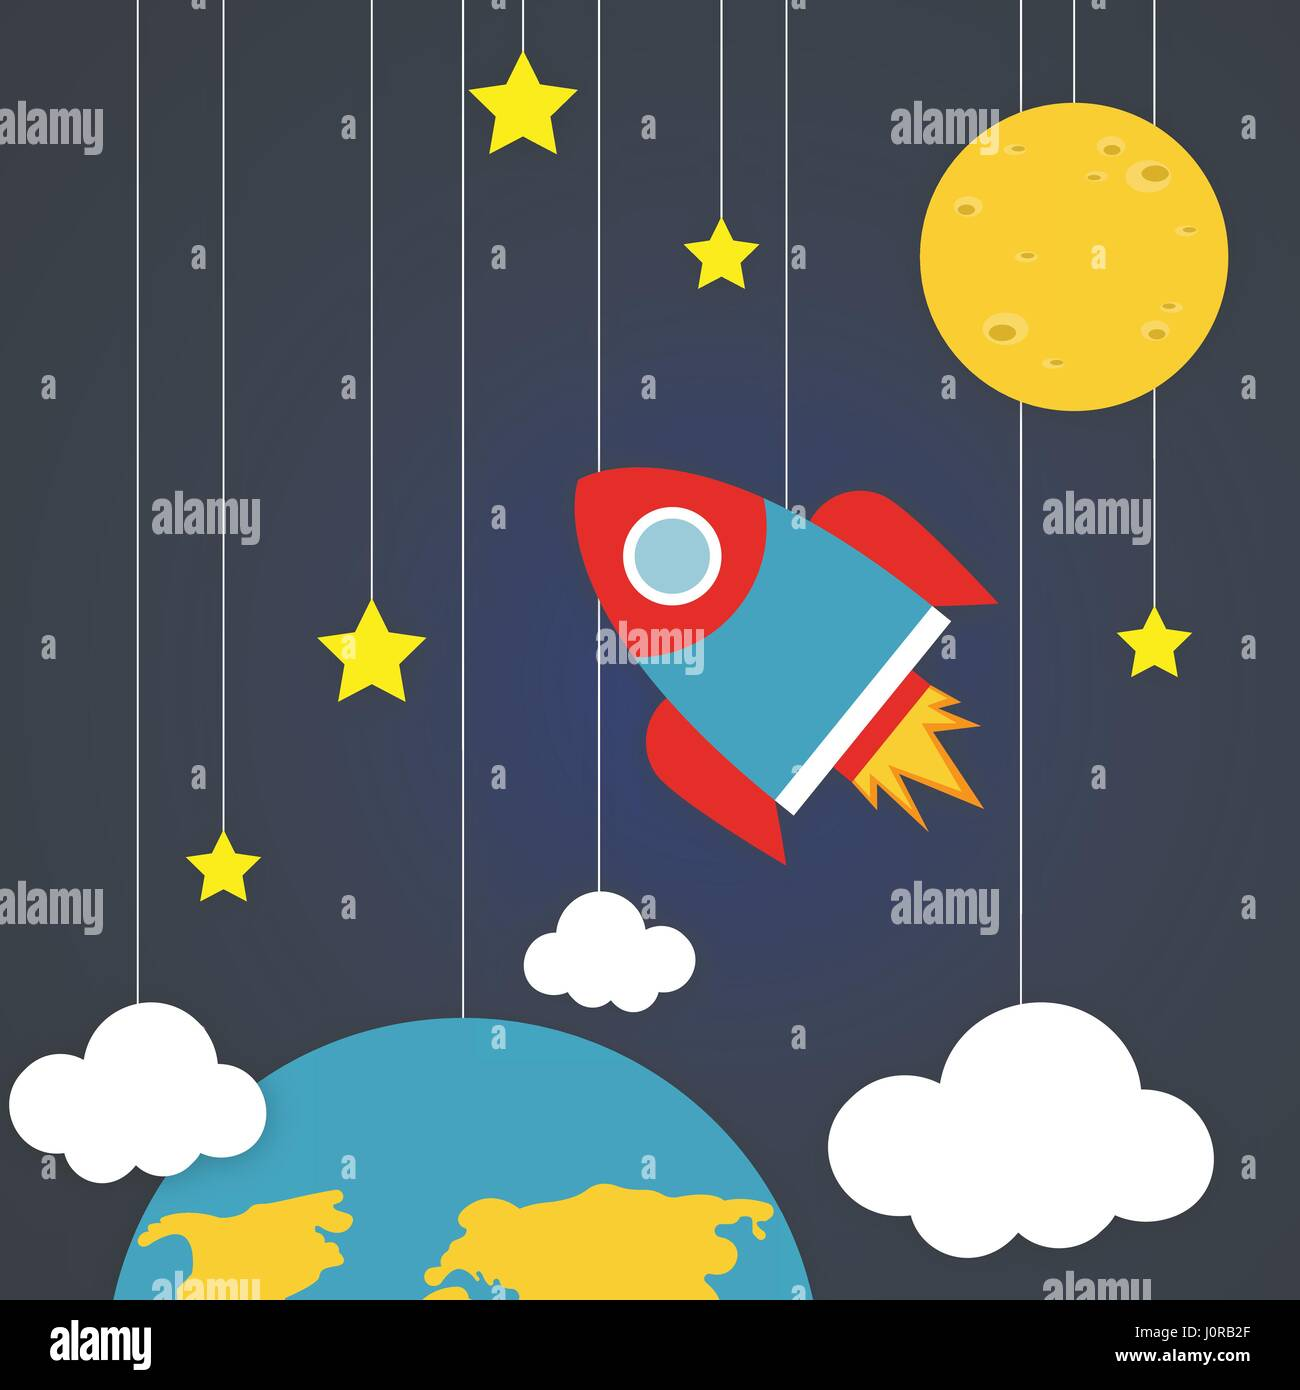 Spacecraft Vector illustration Space with planets, stars, clouds and flying rocket in paper art cartoon style Trendy - Stock Image